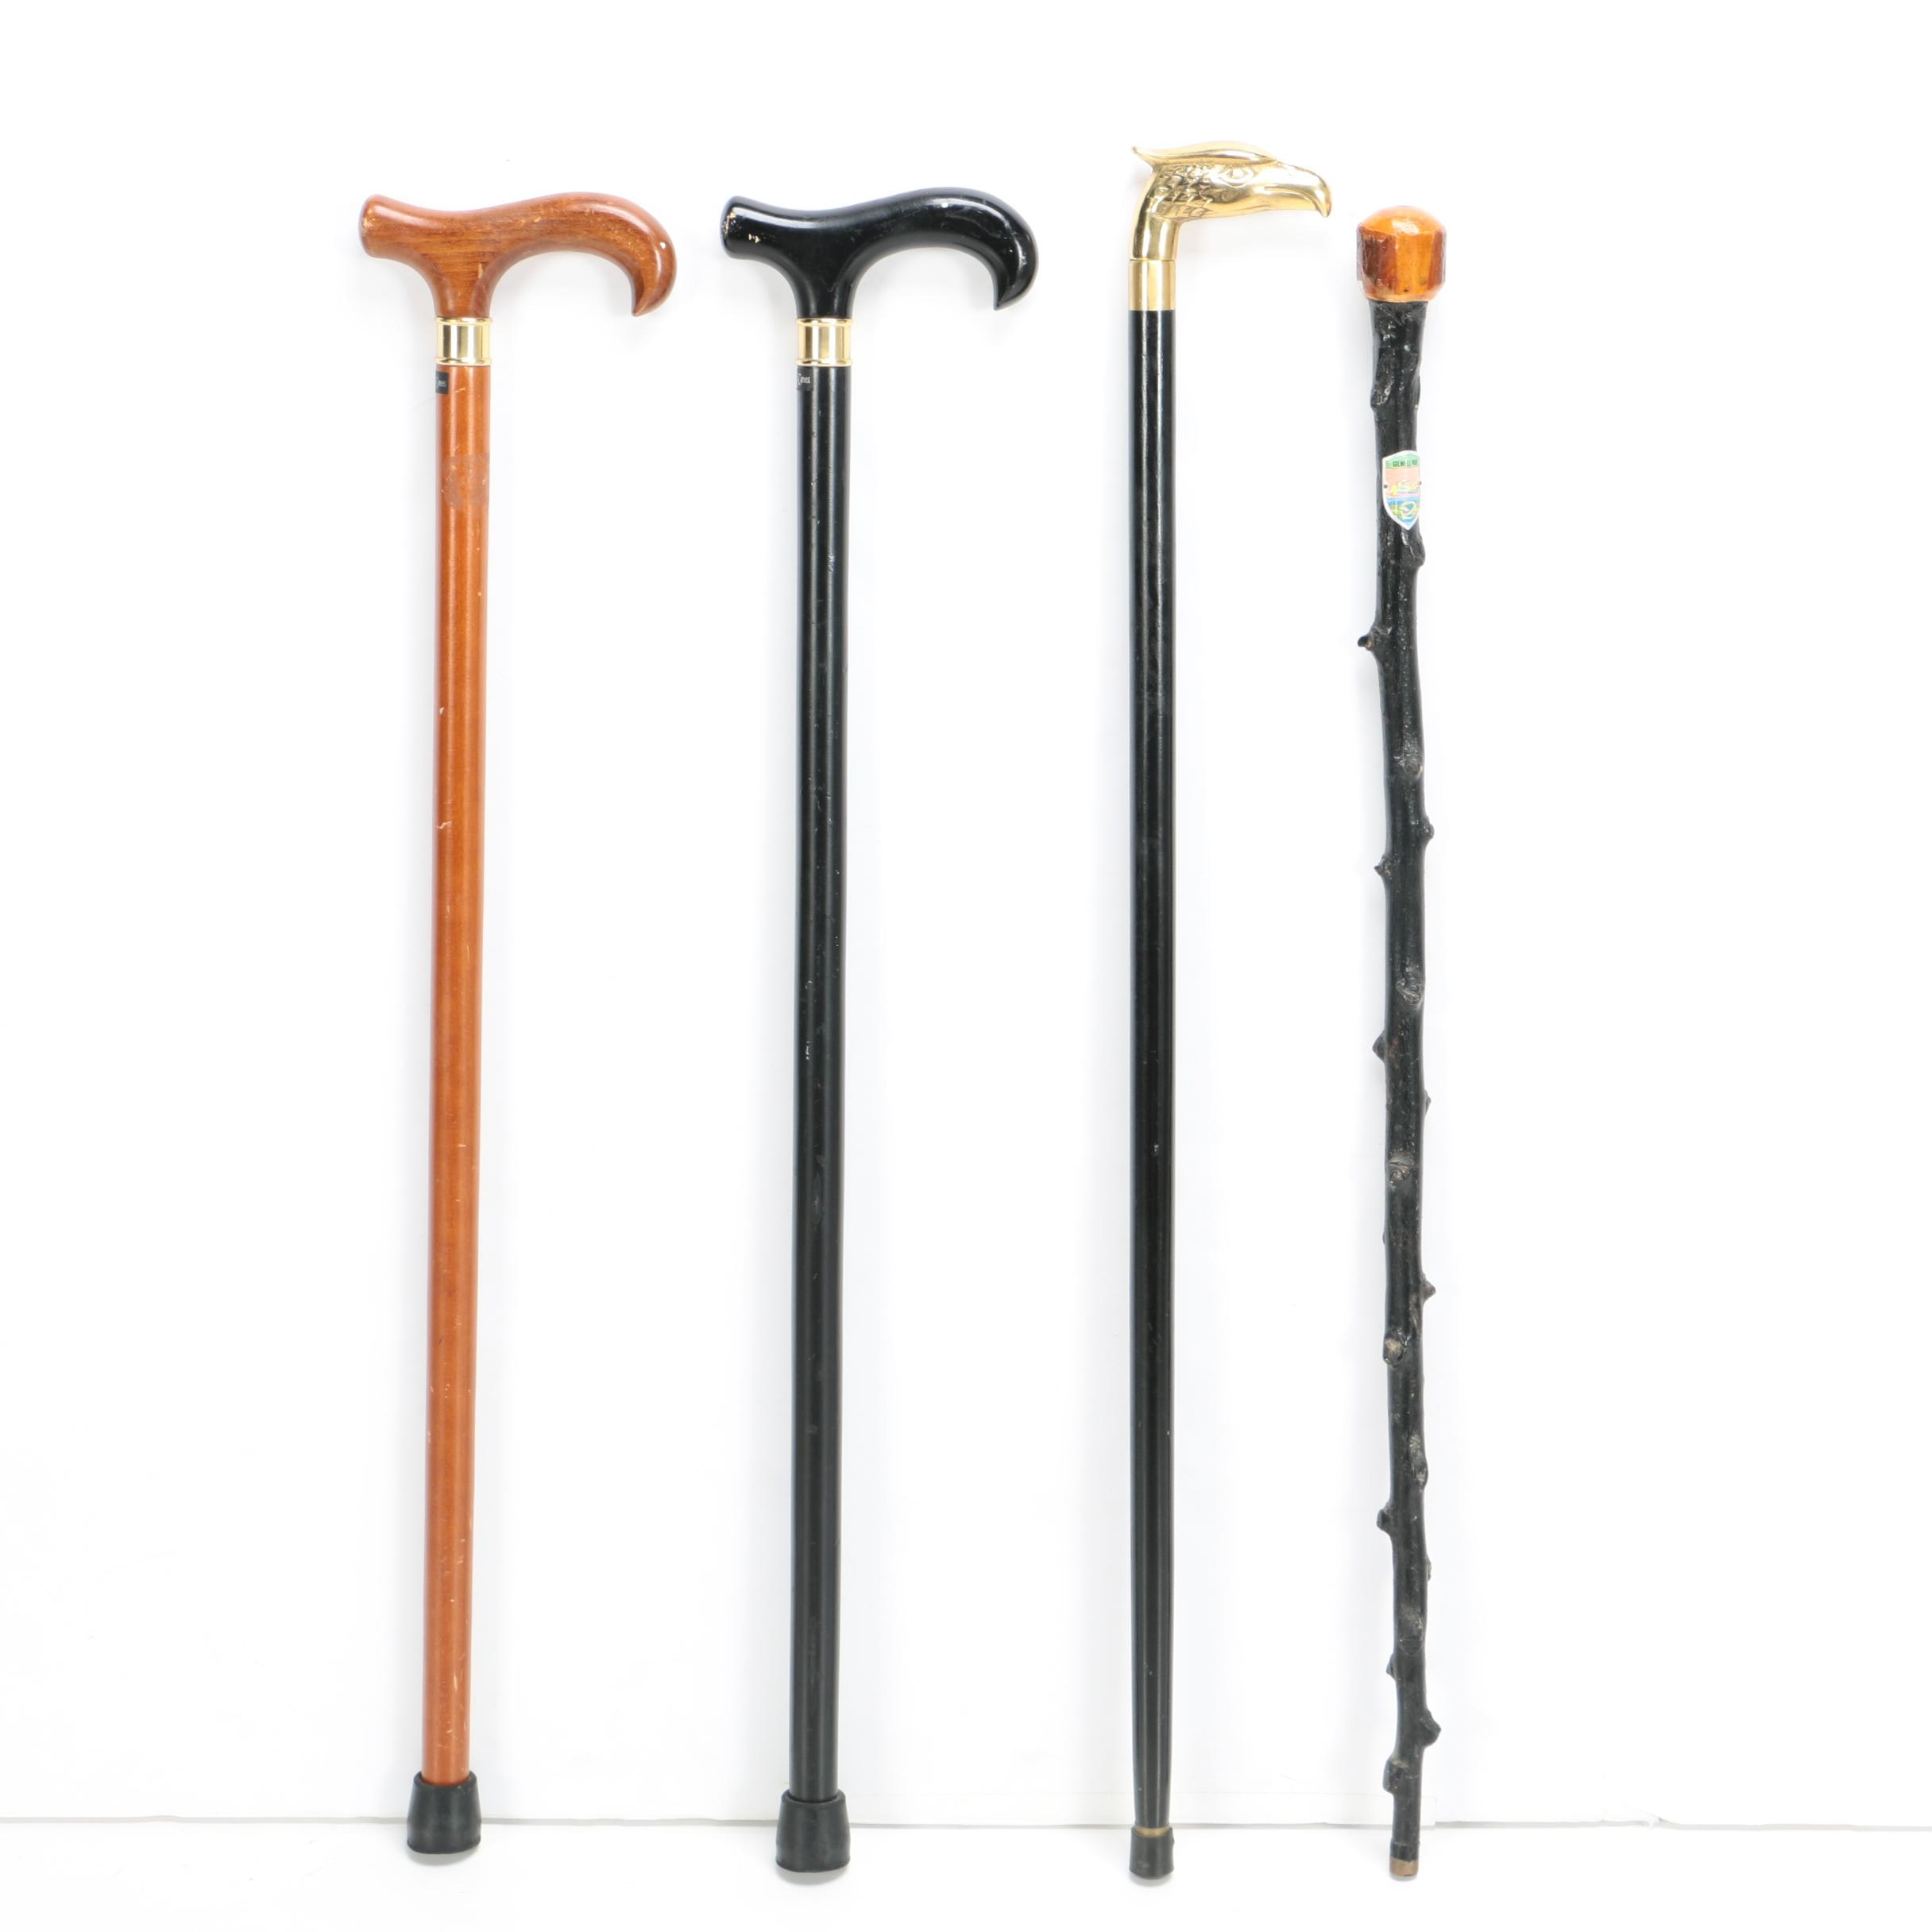 Vintage Wooden Canes with Walking Stick and Sword Cane